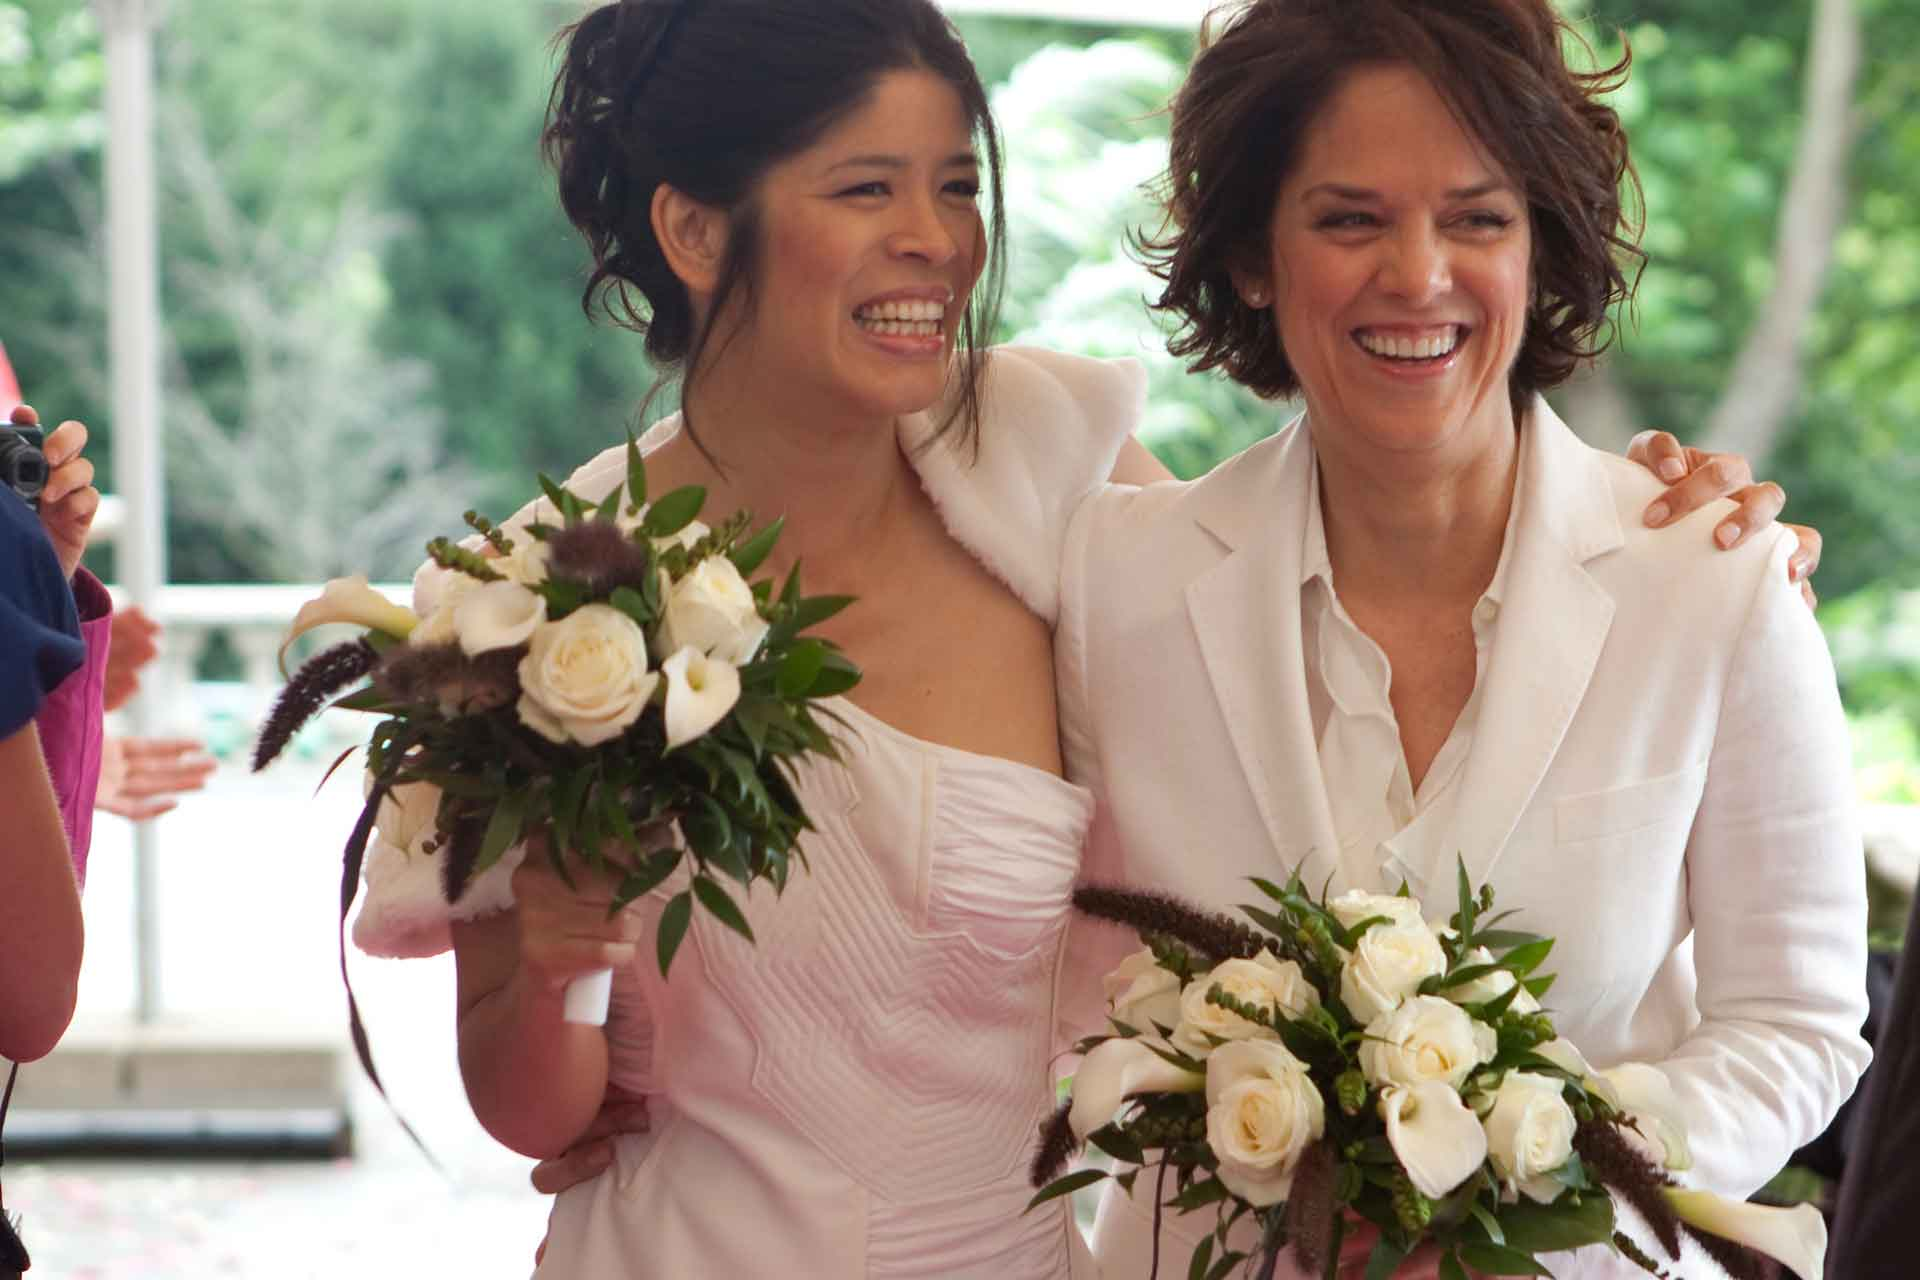 Our Lesbian Wedding – Legal in Amsterdam!